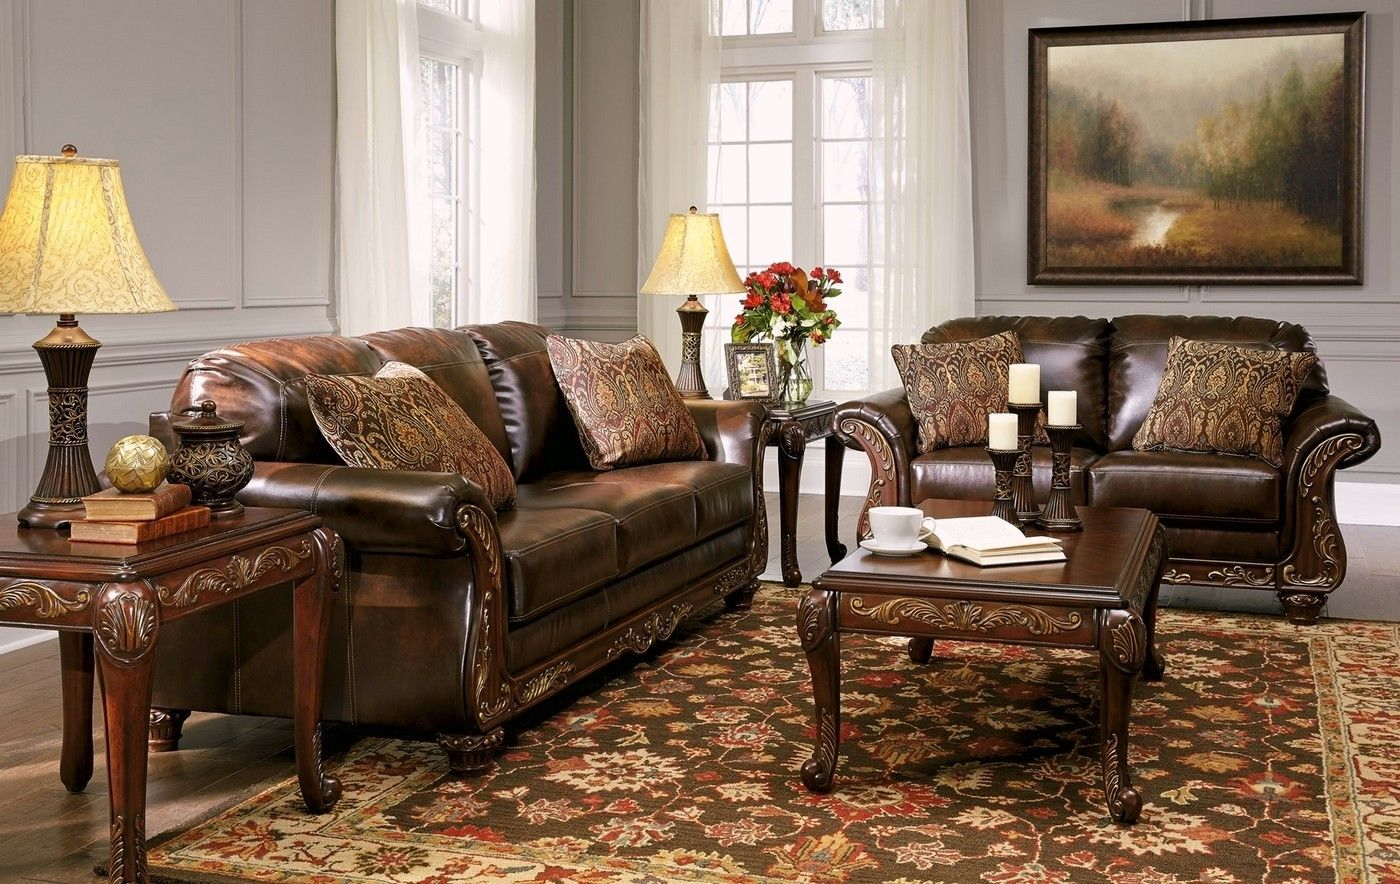 Vanceton brown leather traditional wood sofa loveseat Living room furniture sets uk